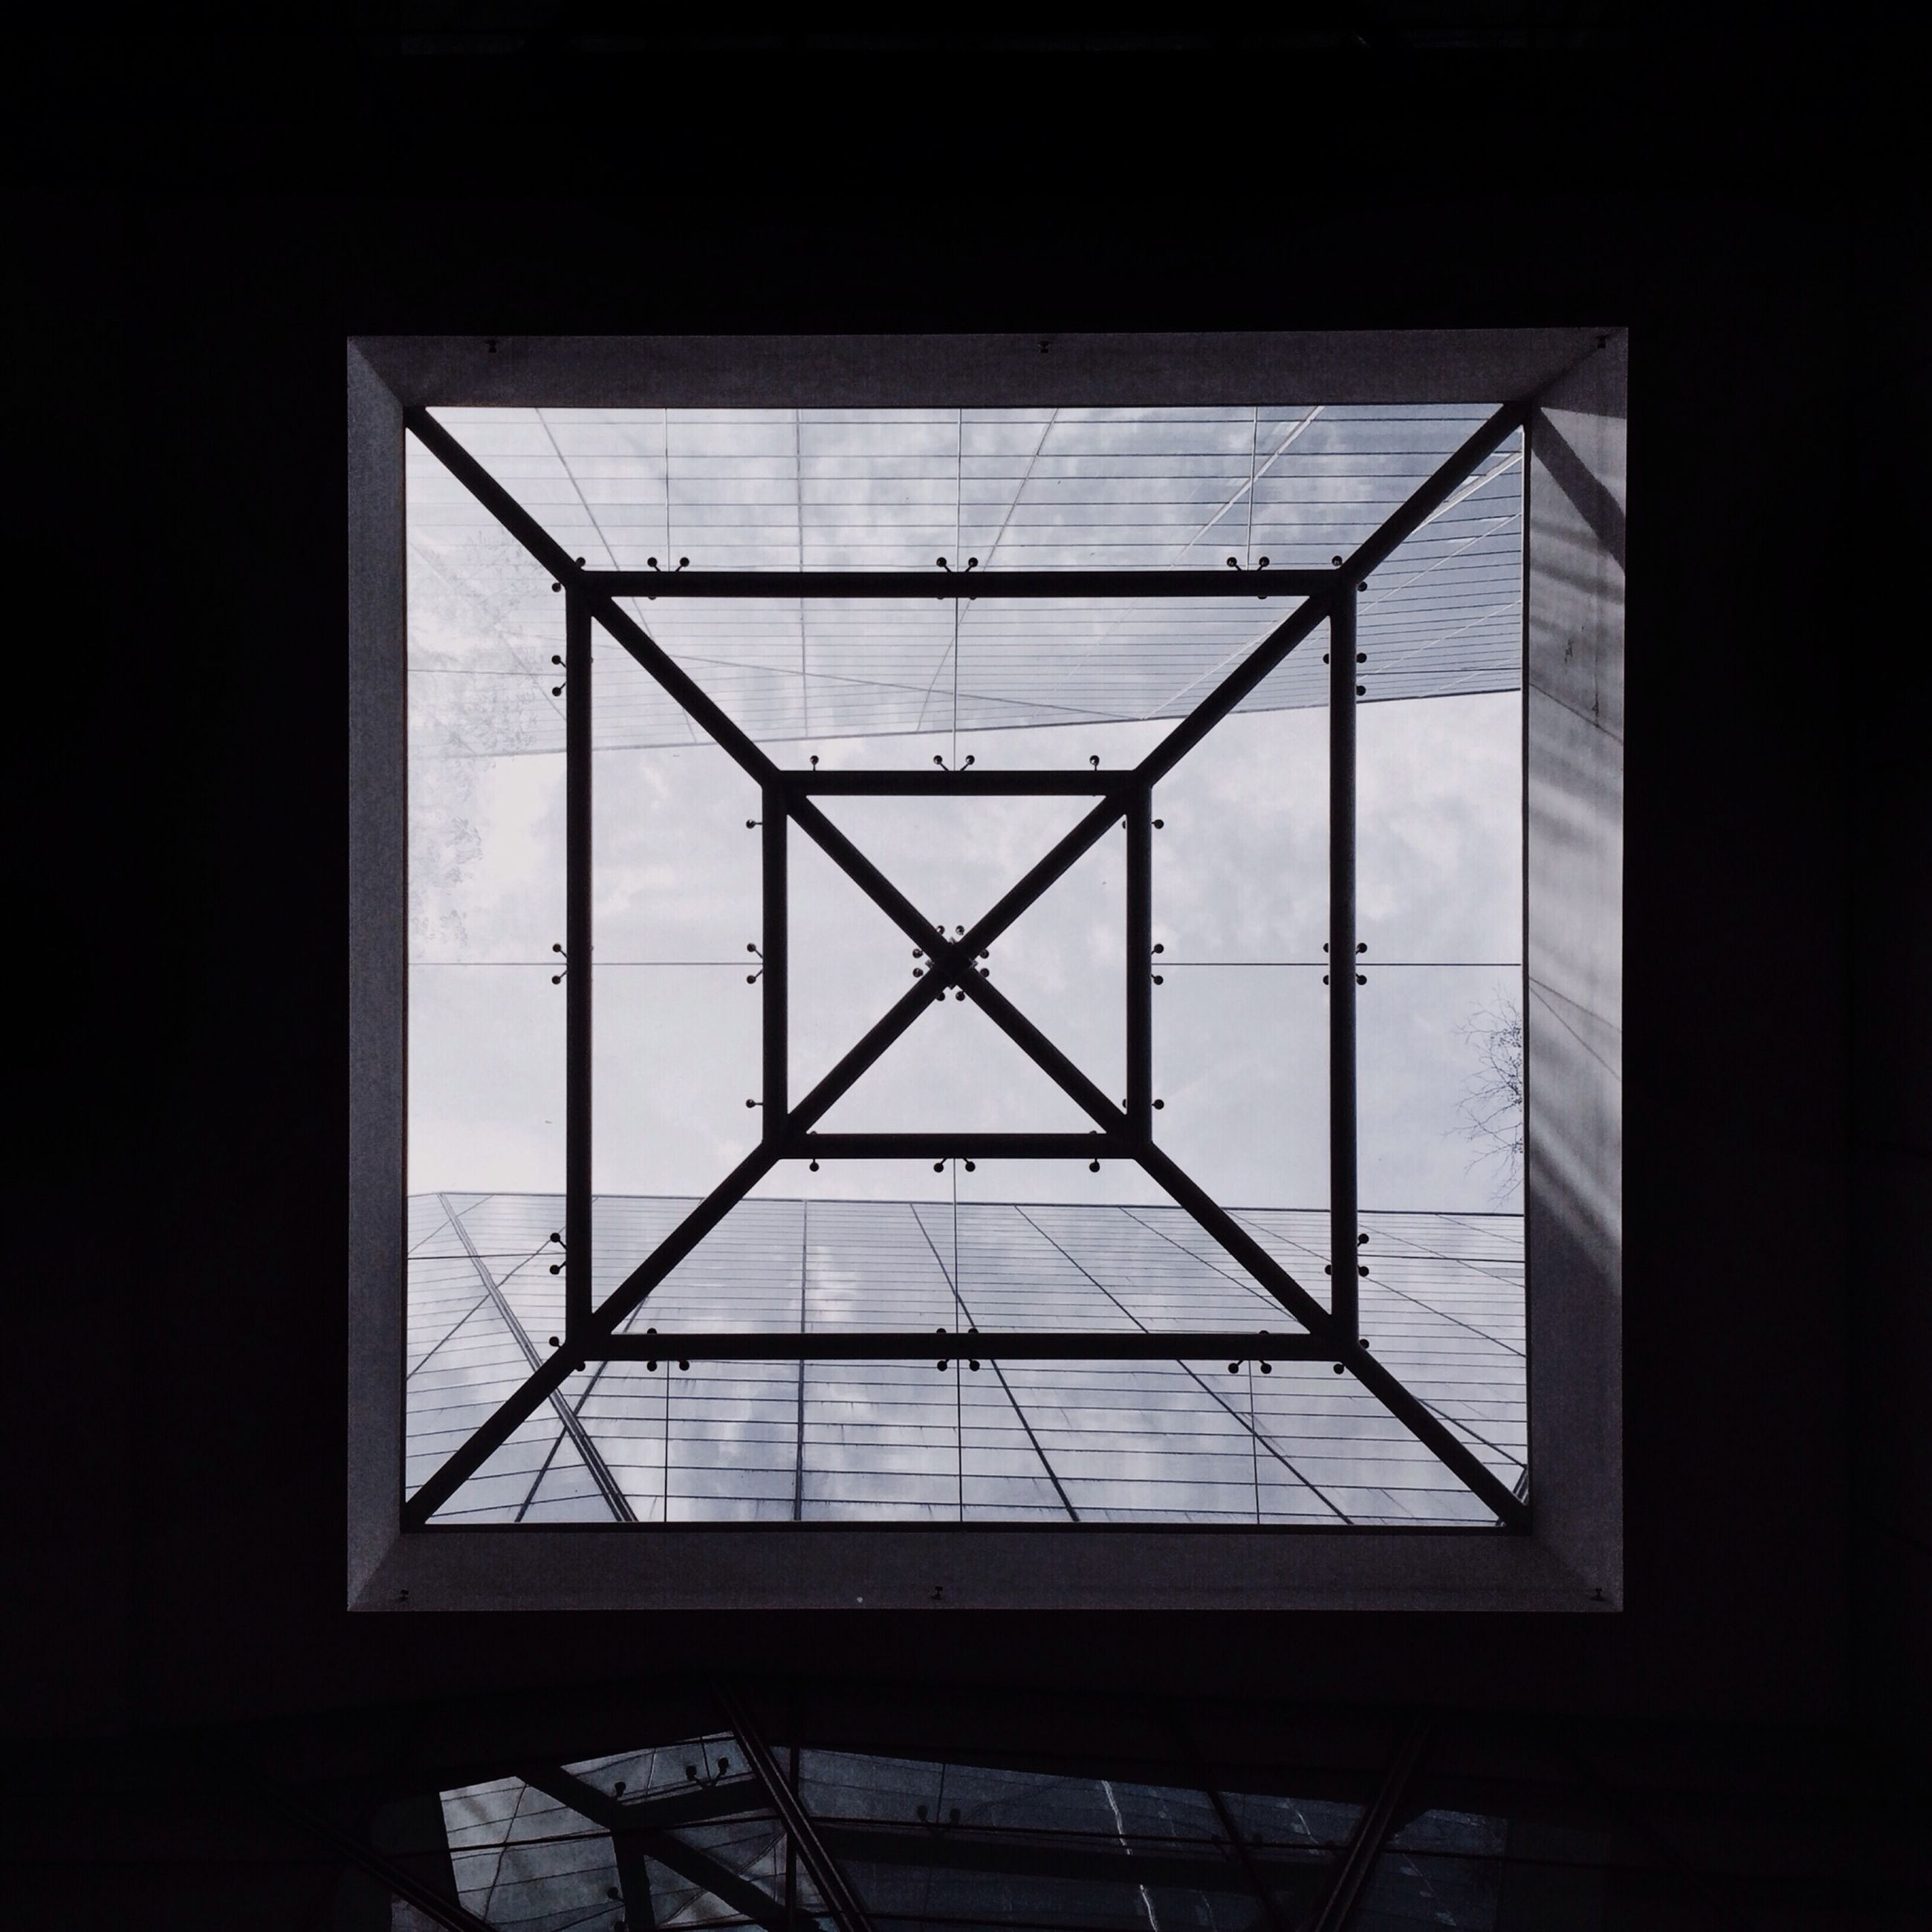 indoors, window, glass - material, built structure, architecture, transparent, geometric shape, low angle view, glass, no people, day, sky, copy space, home interior, sunlight, ceiling, skylight, pattern, modern, clear sky